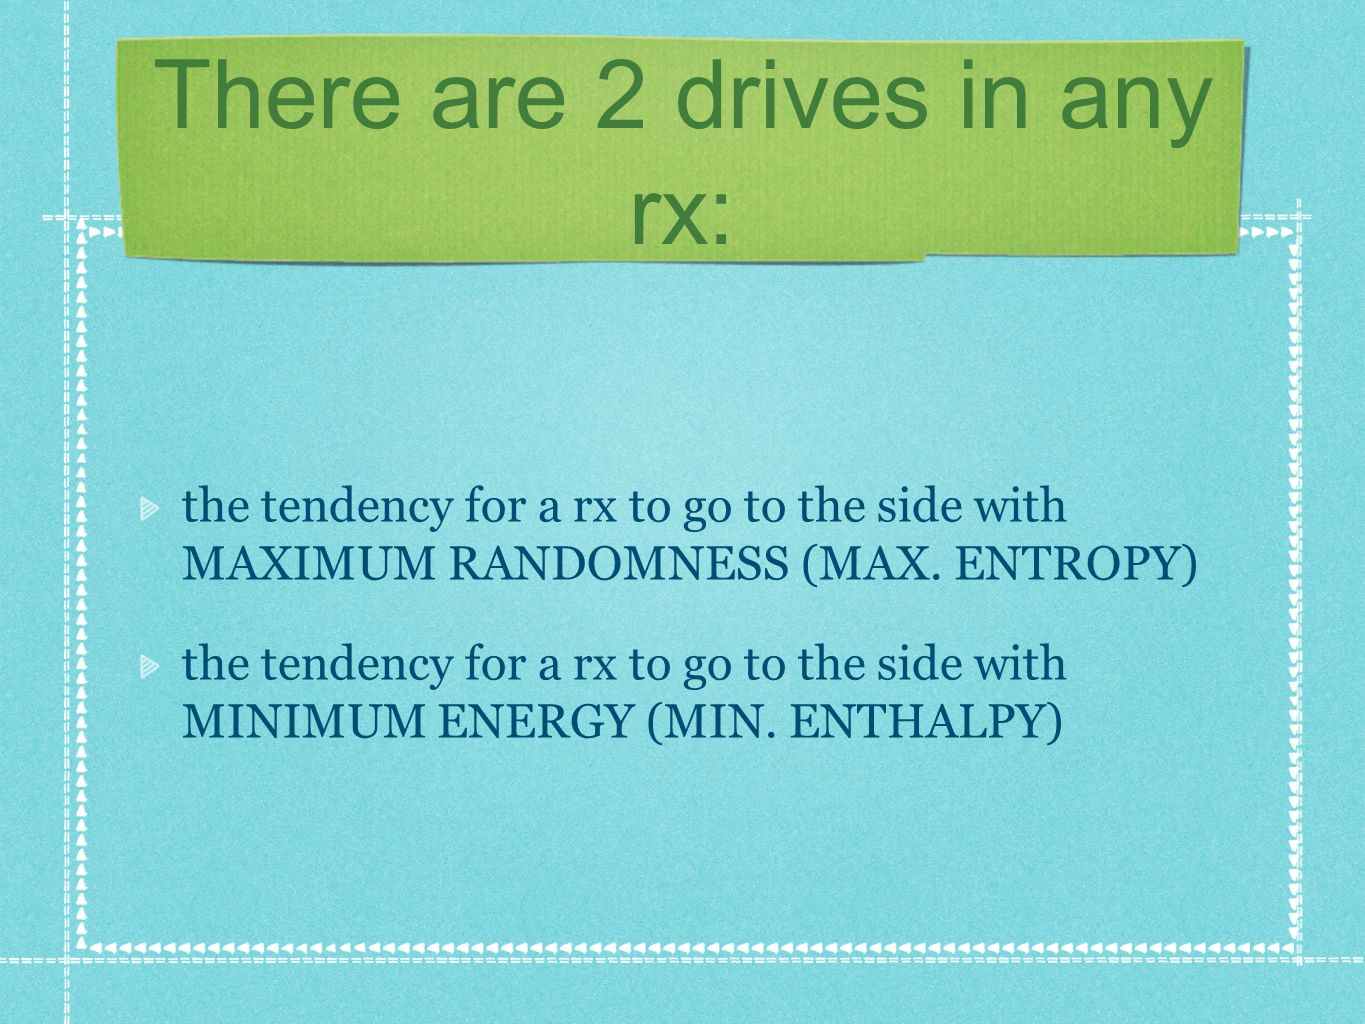 There are 2 drives in any rx: the tendency for a rx to go to the side with MAXIMUM RANDOMNESS (MAX.